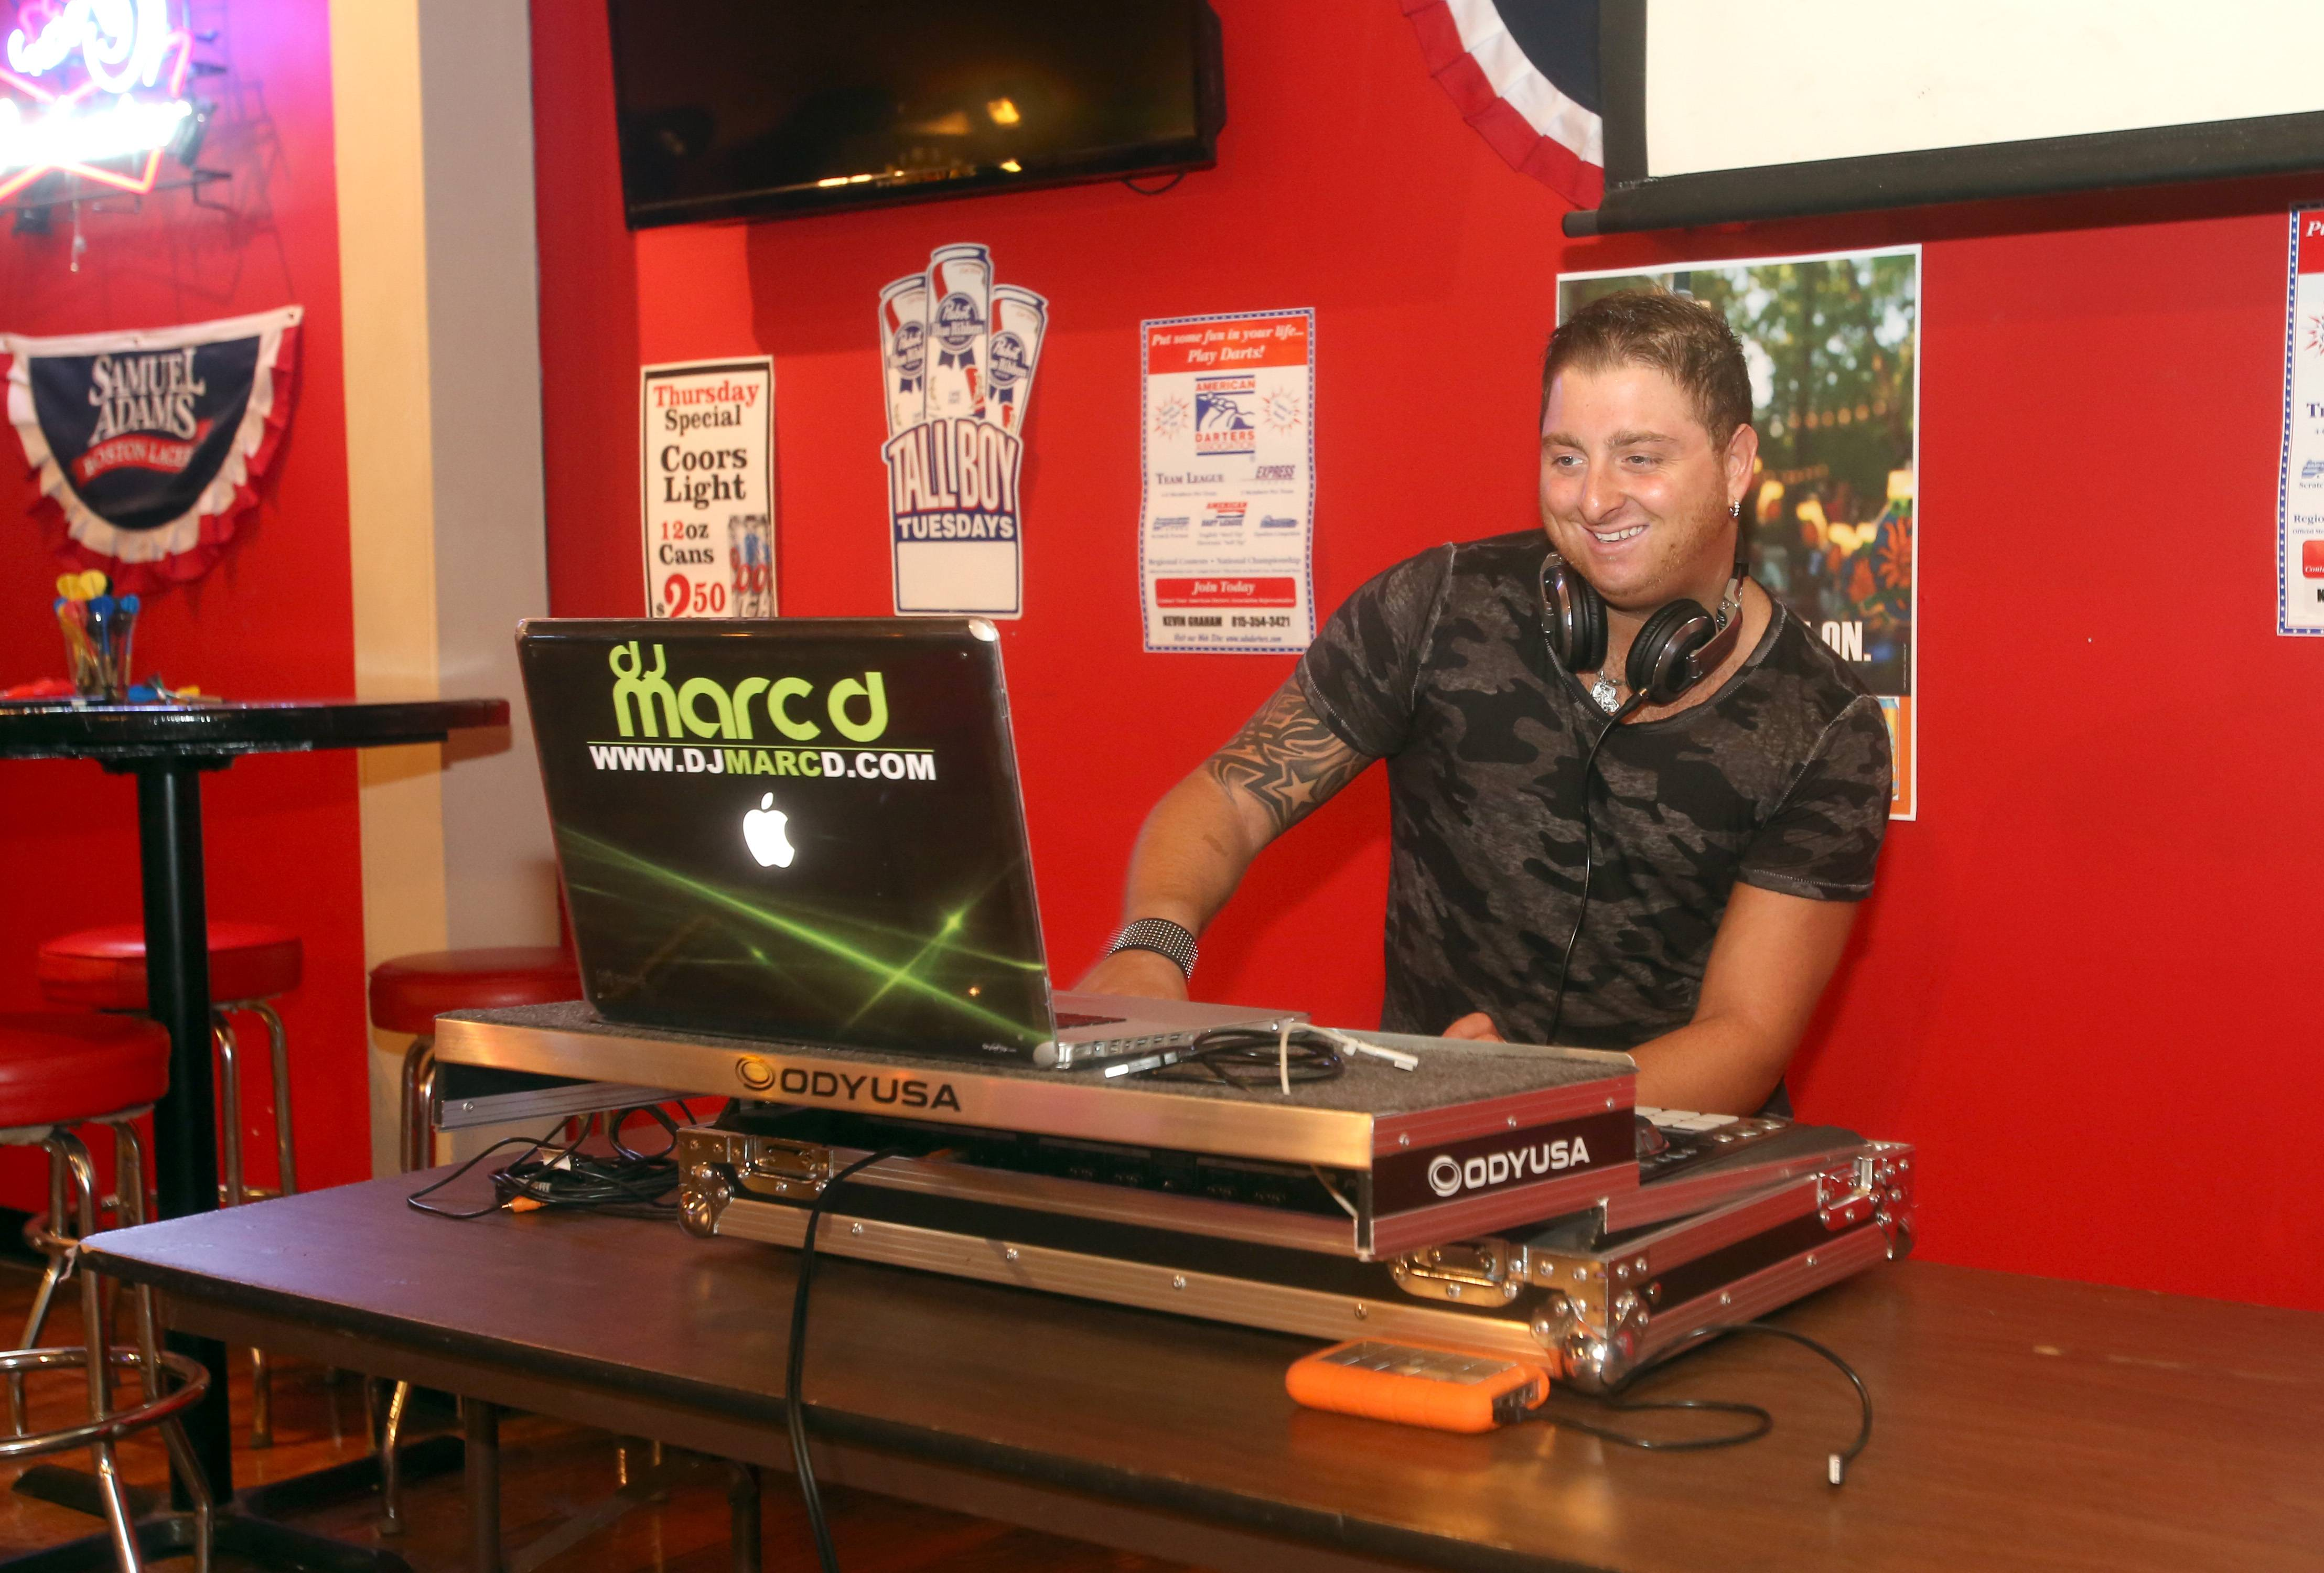 DJ Marc D. provides entertainment at Gnarly J's in Downers Grove.